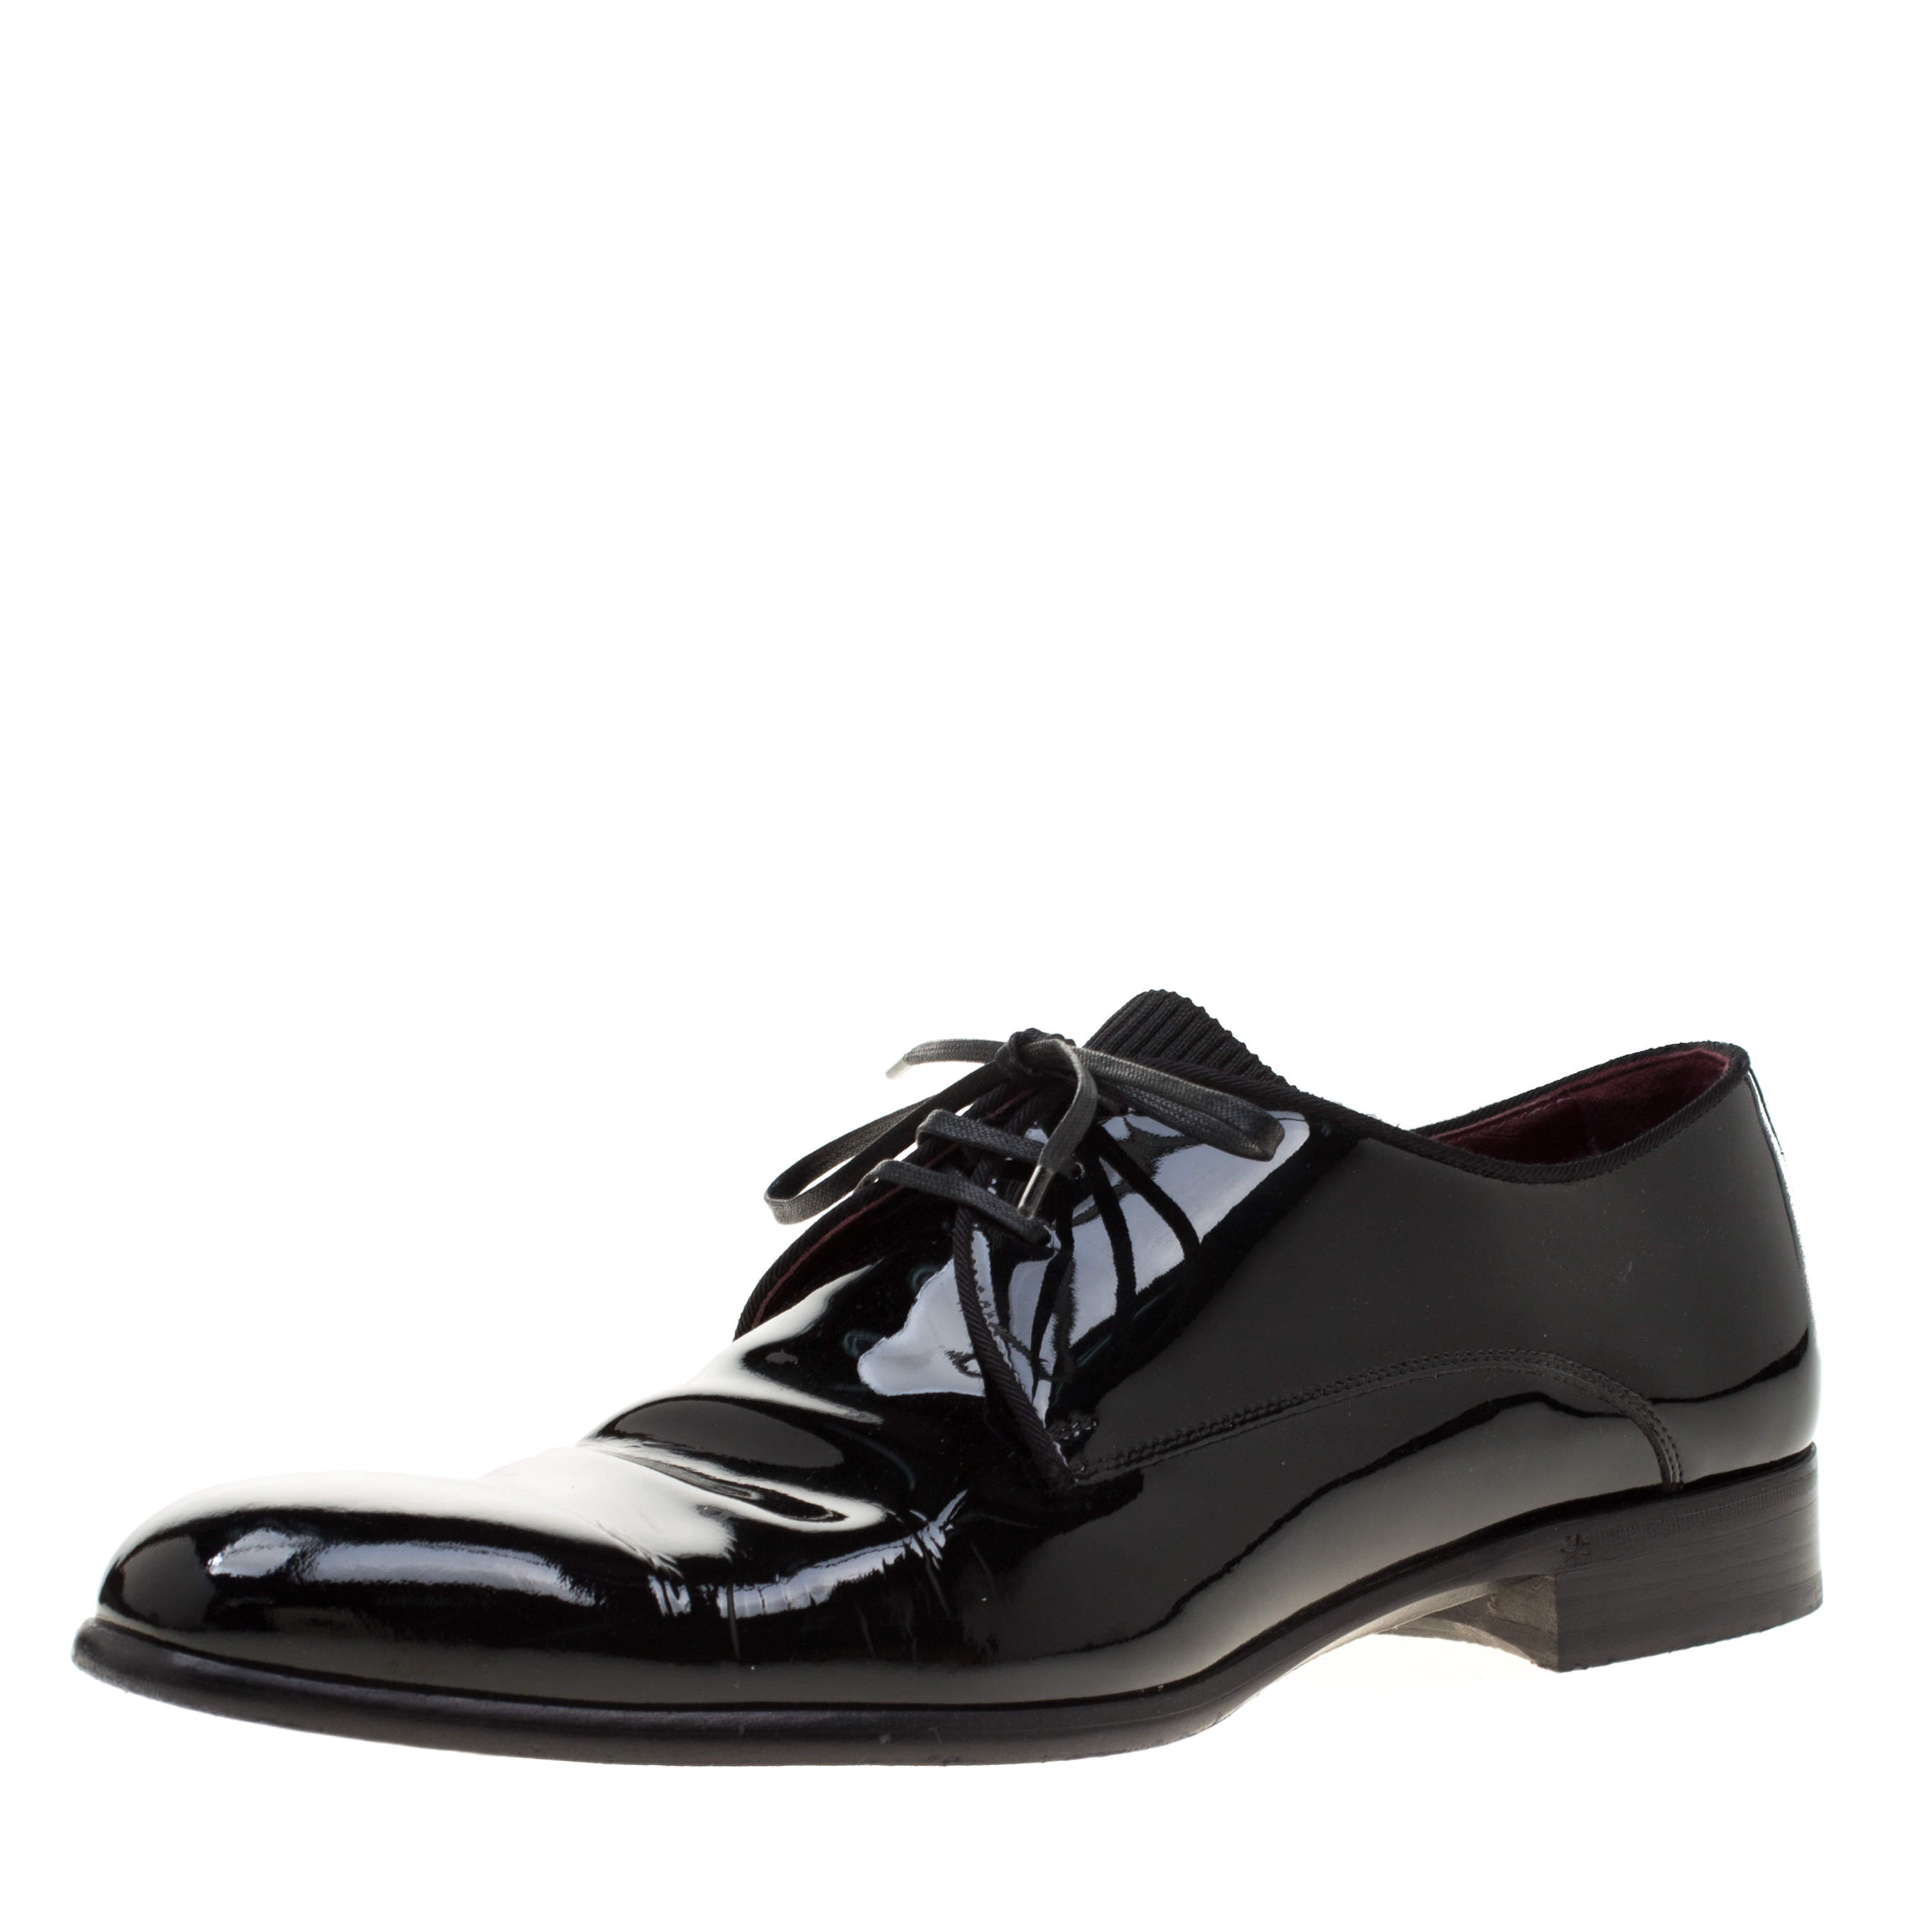 Dolce & Gabbana Black Patent Leather Derby Oxford Shoes Size 43